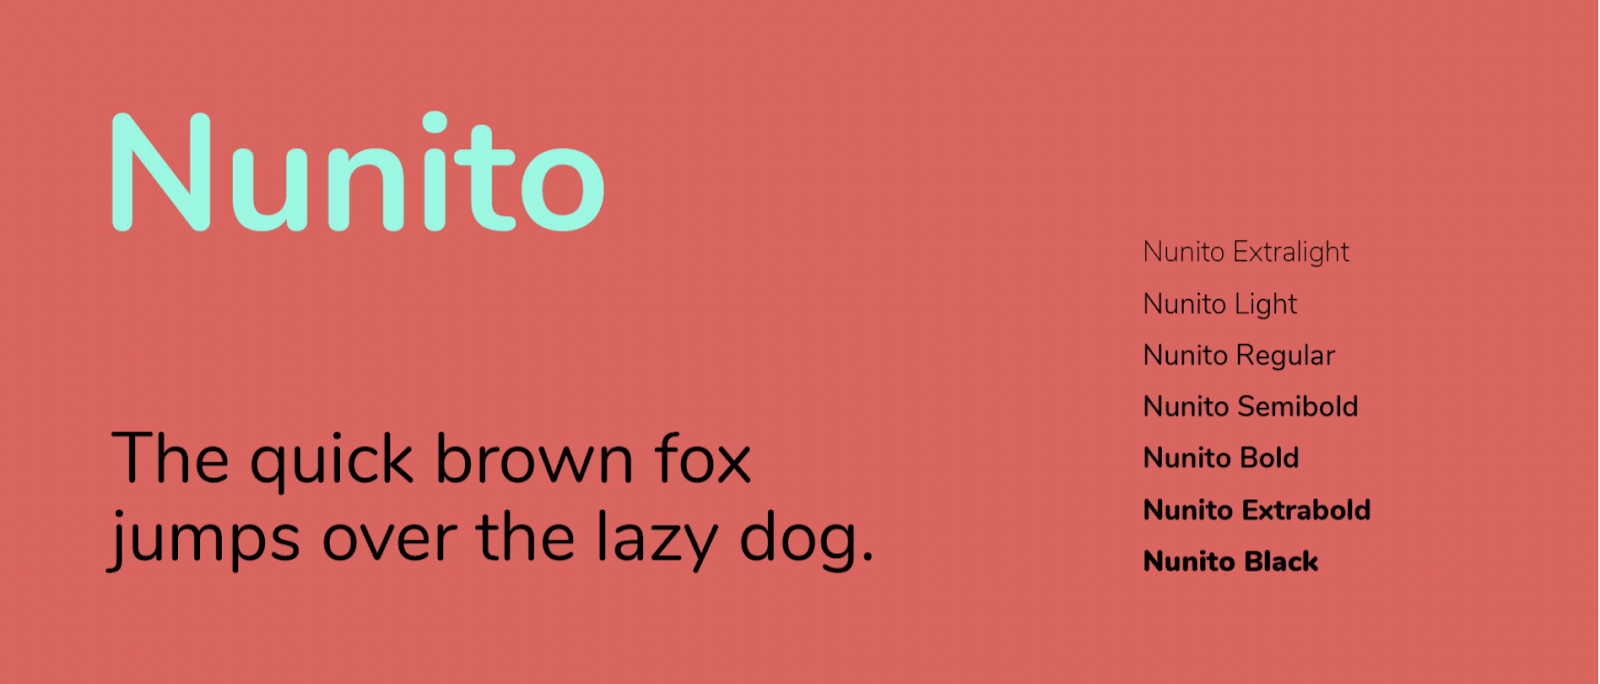 Nunito looks great at all sizes, especially small font sizes – source